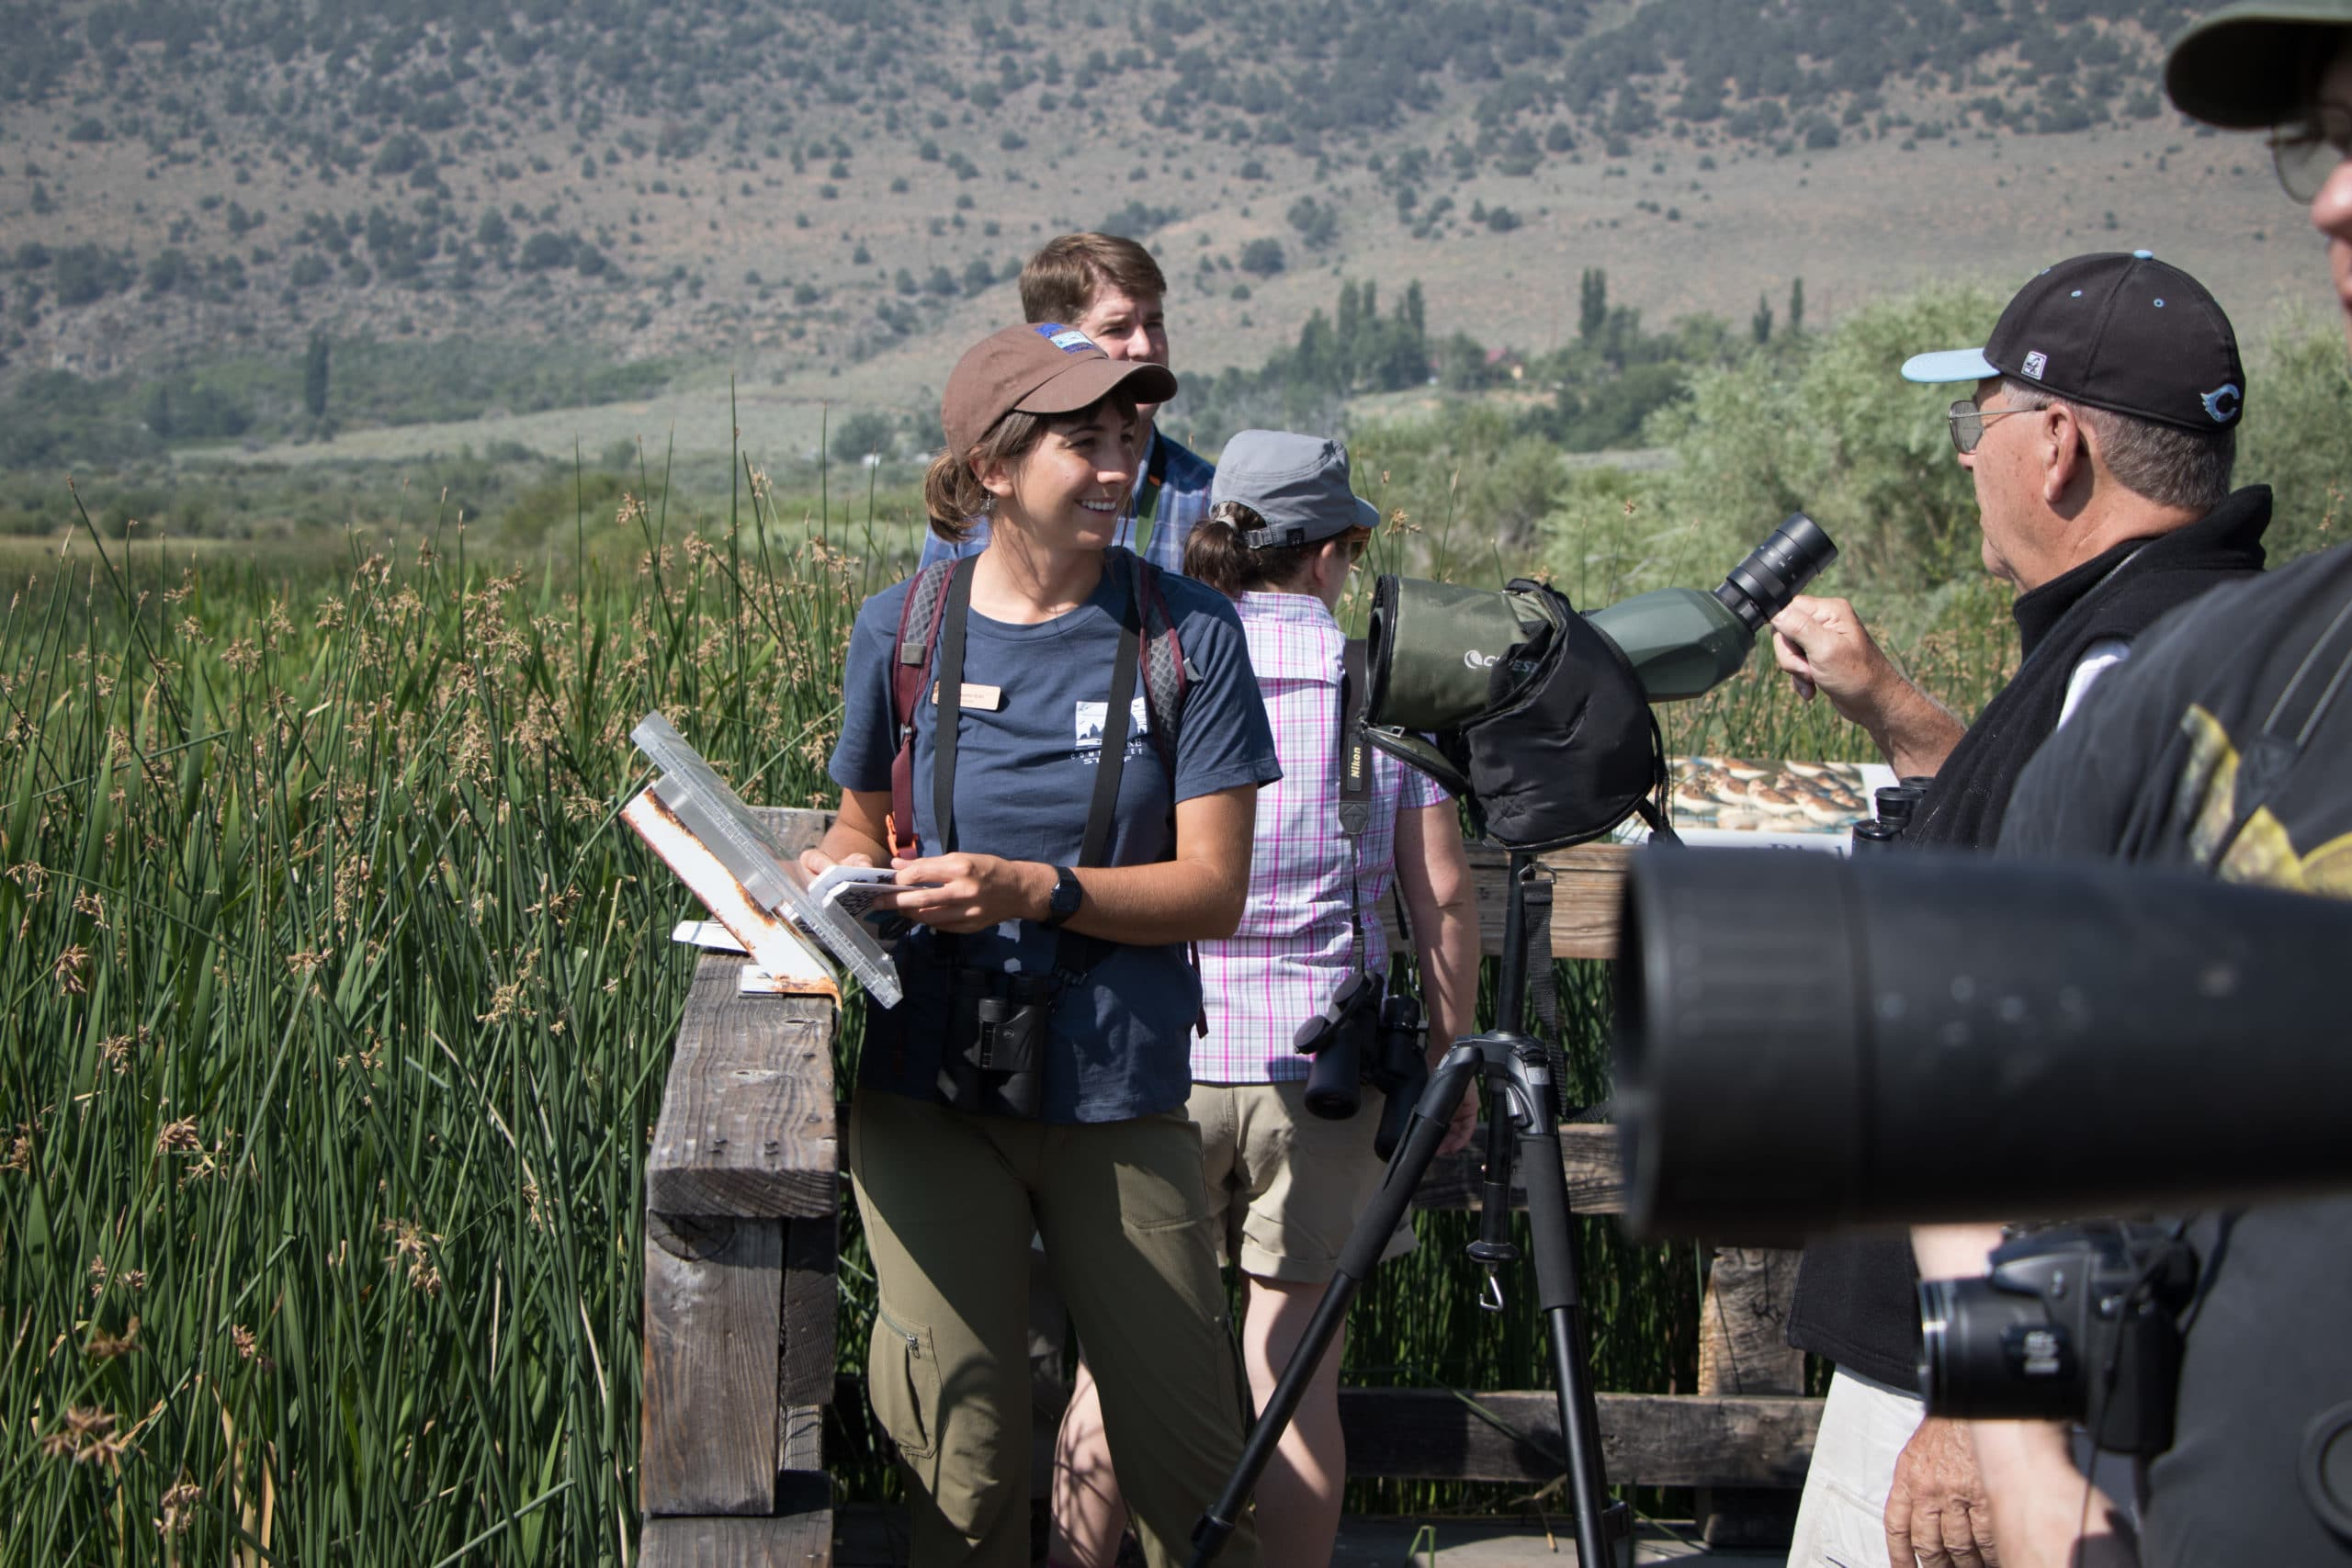 Five people with binoculars and spotting scopes are gathered on a wooden platform among marsh reeds happily doing some bird watching on a bright sunny day.